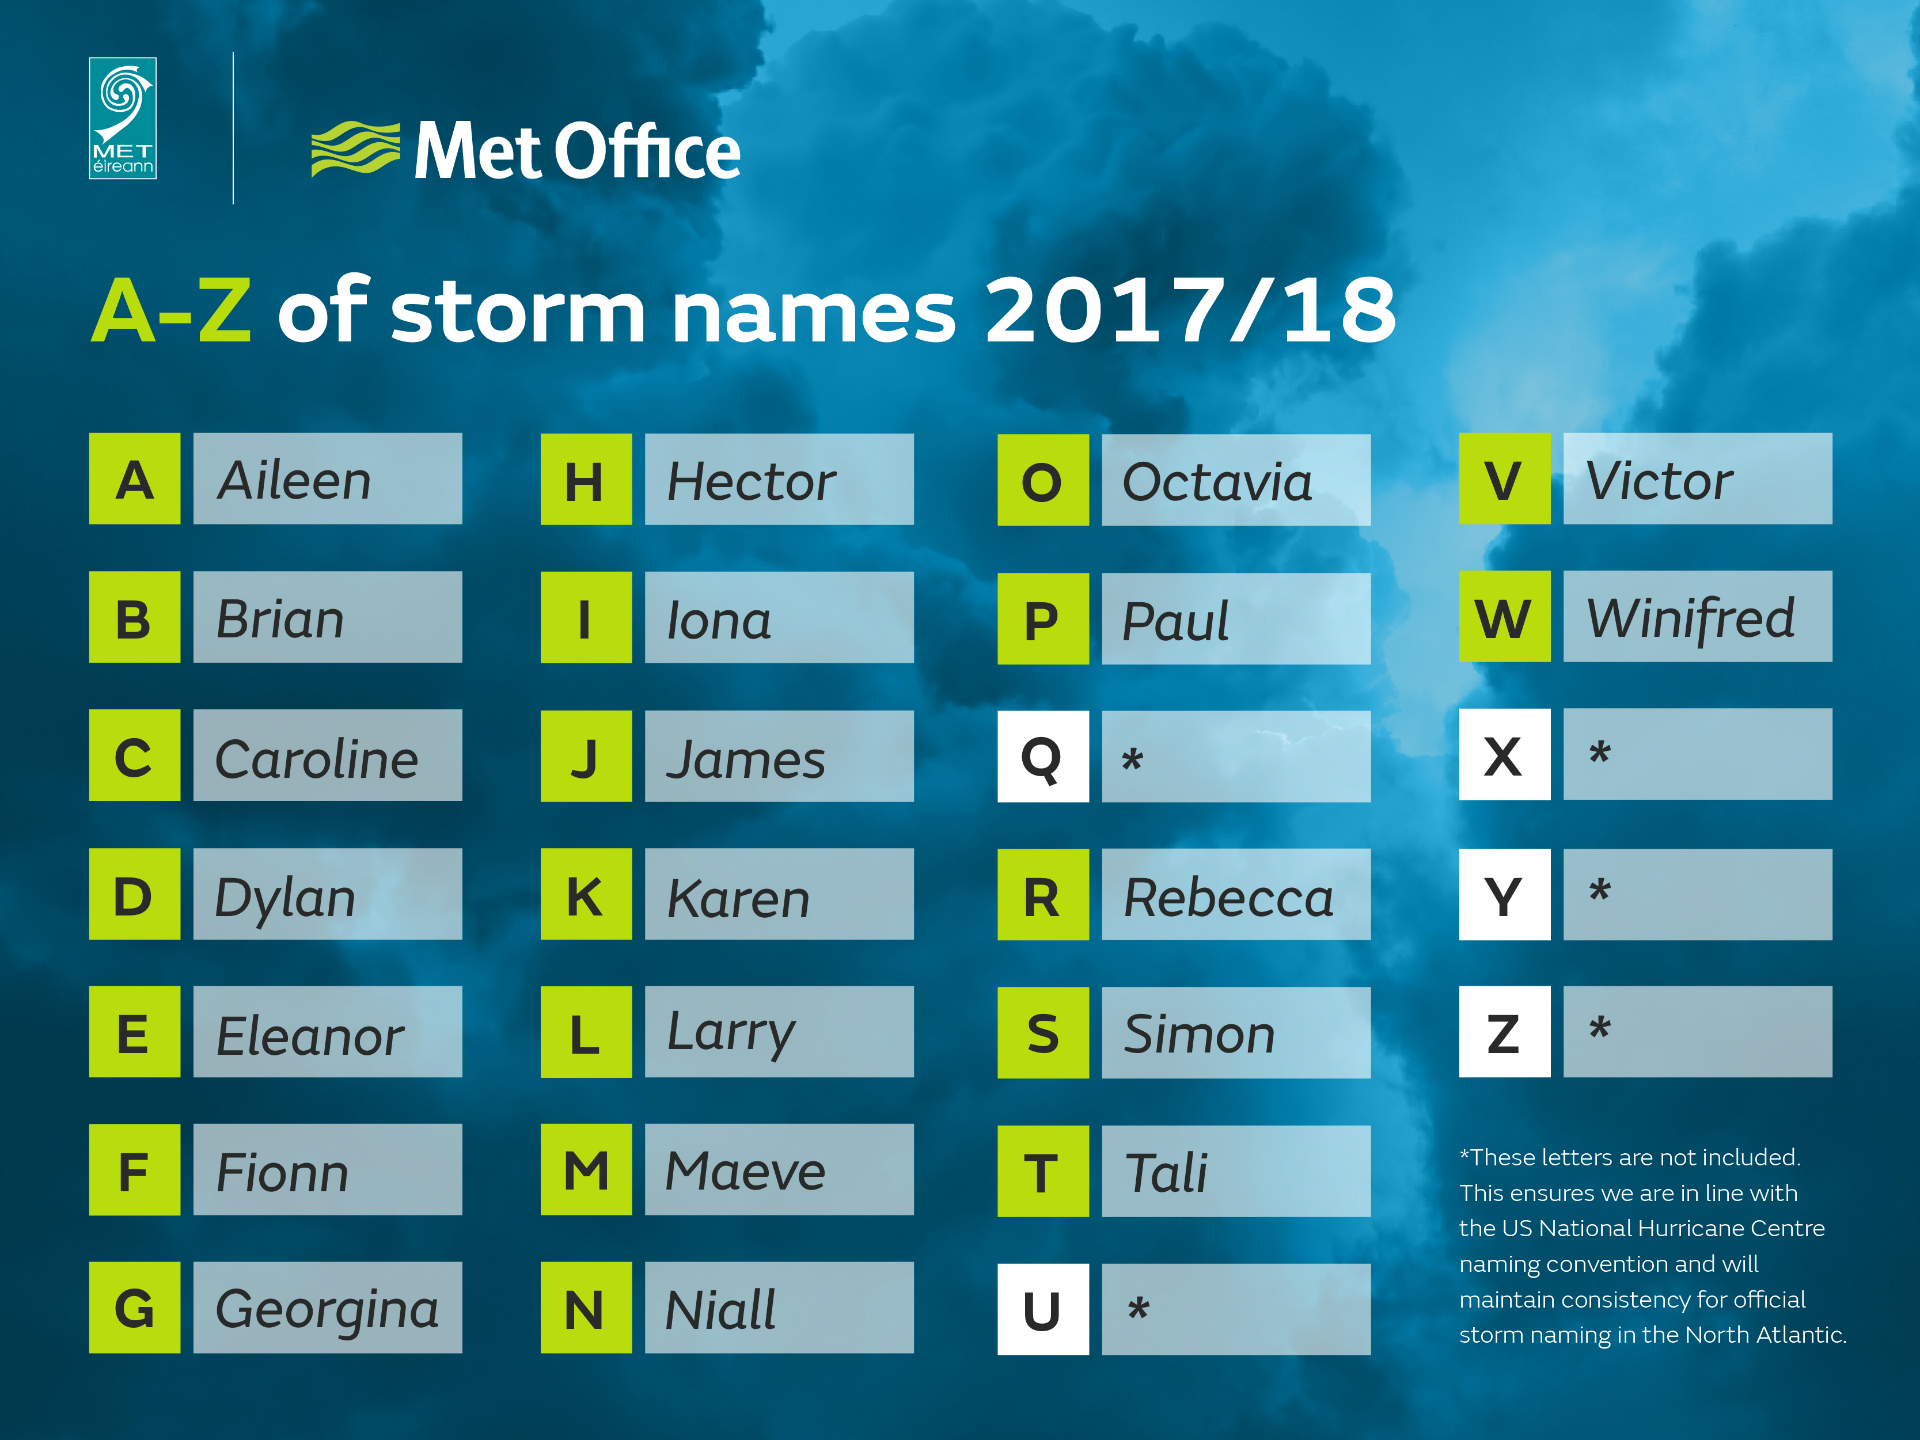 Met Office Storm Names 2017/18